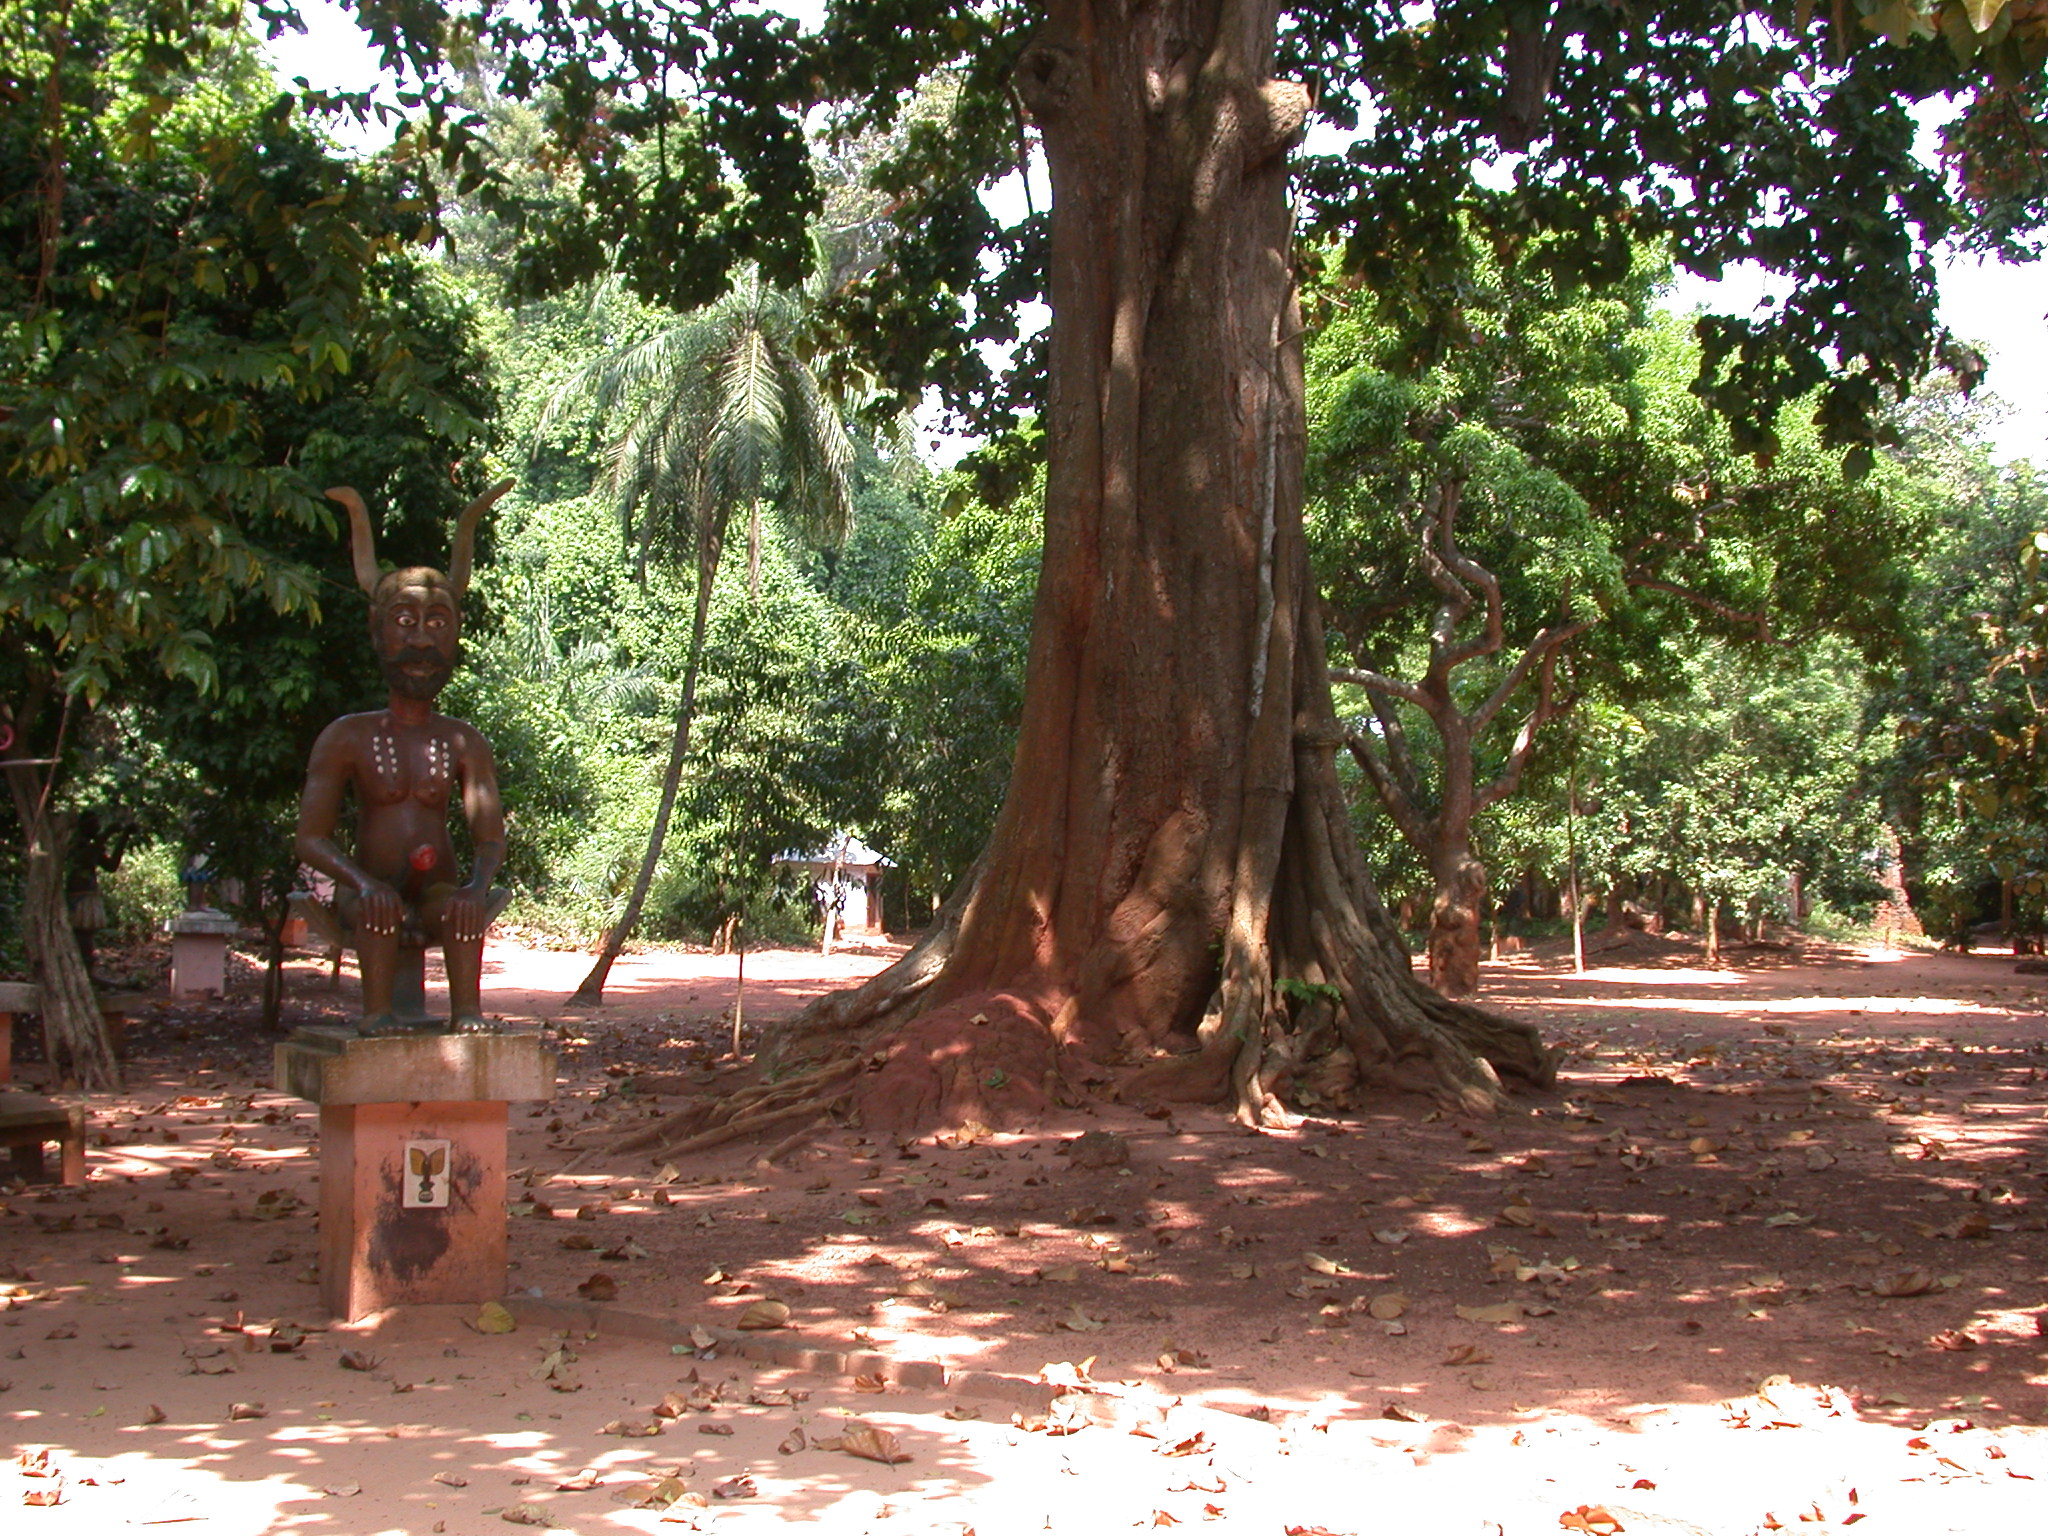 Horned and Phallic Legba Deity Sculpture and Large Tree, Kpasse Sacred Forest, Ouidah, Benin